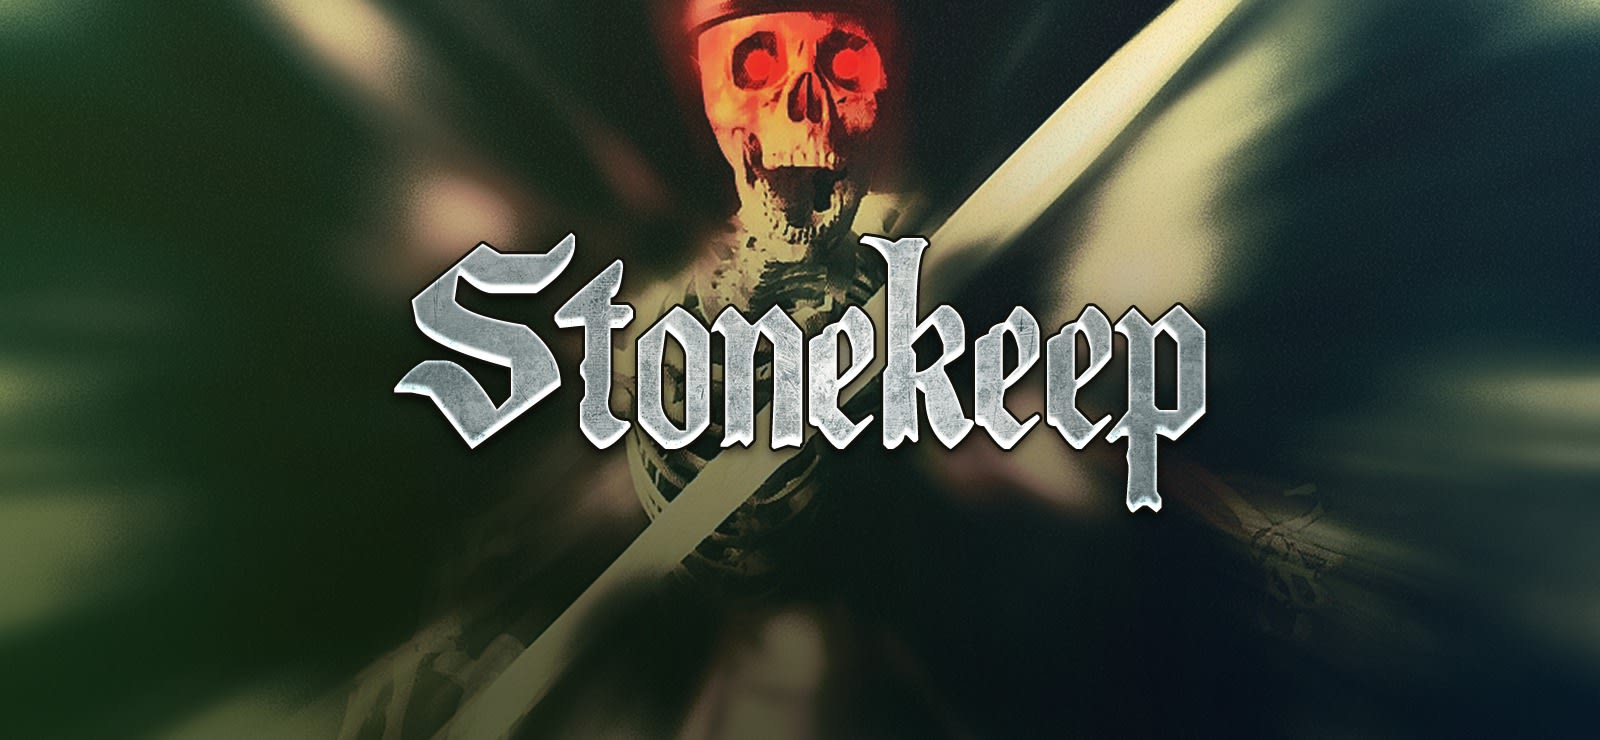 Stonekeep varies-with-device